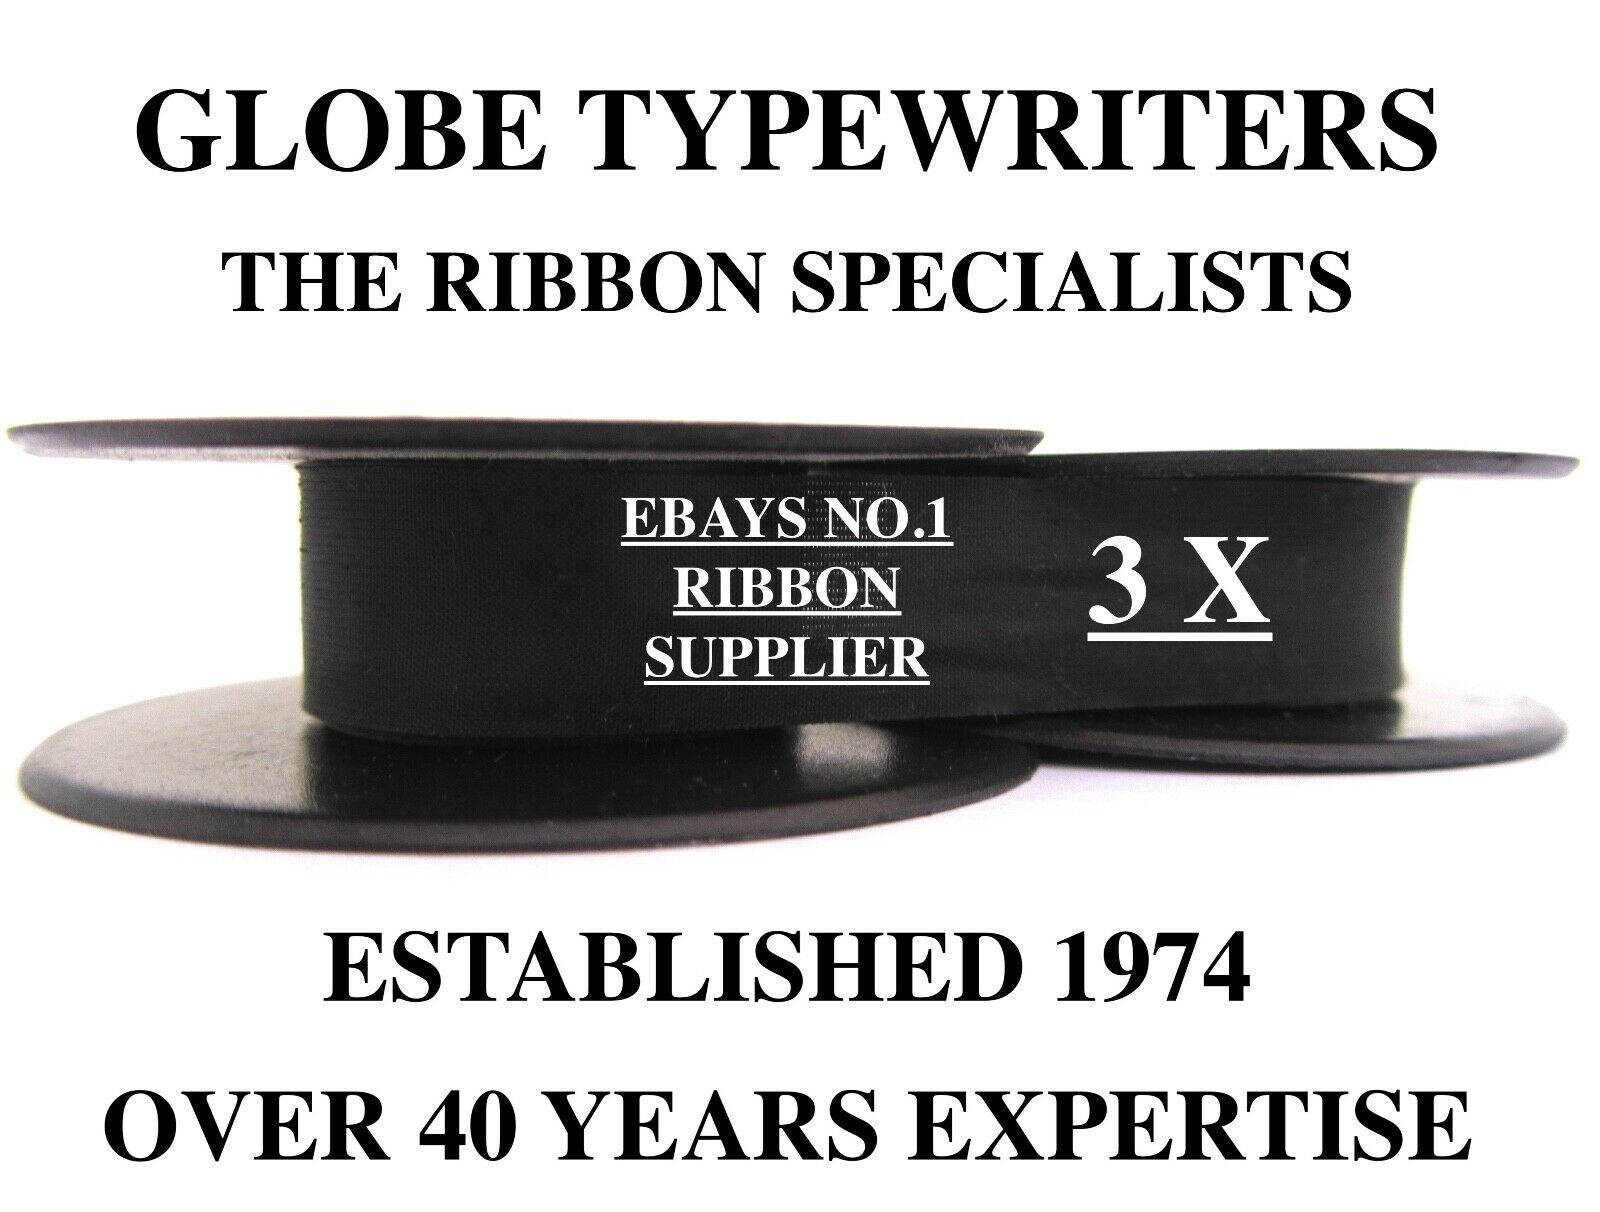 3 x 'ADLER GABRIELE 25' *BLACK* TOP QUALITY *10 METRE* TYPEWRITER RIBBONS